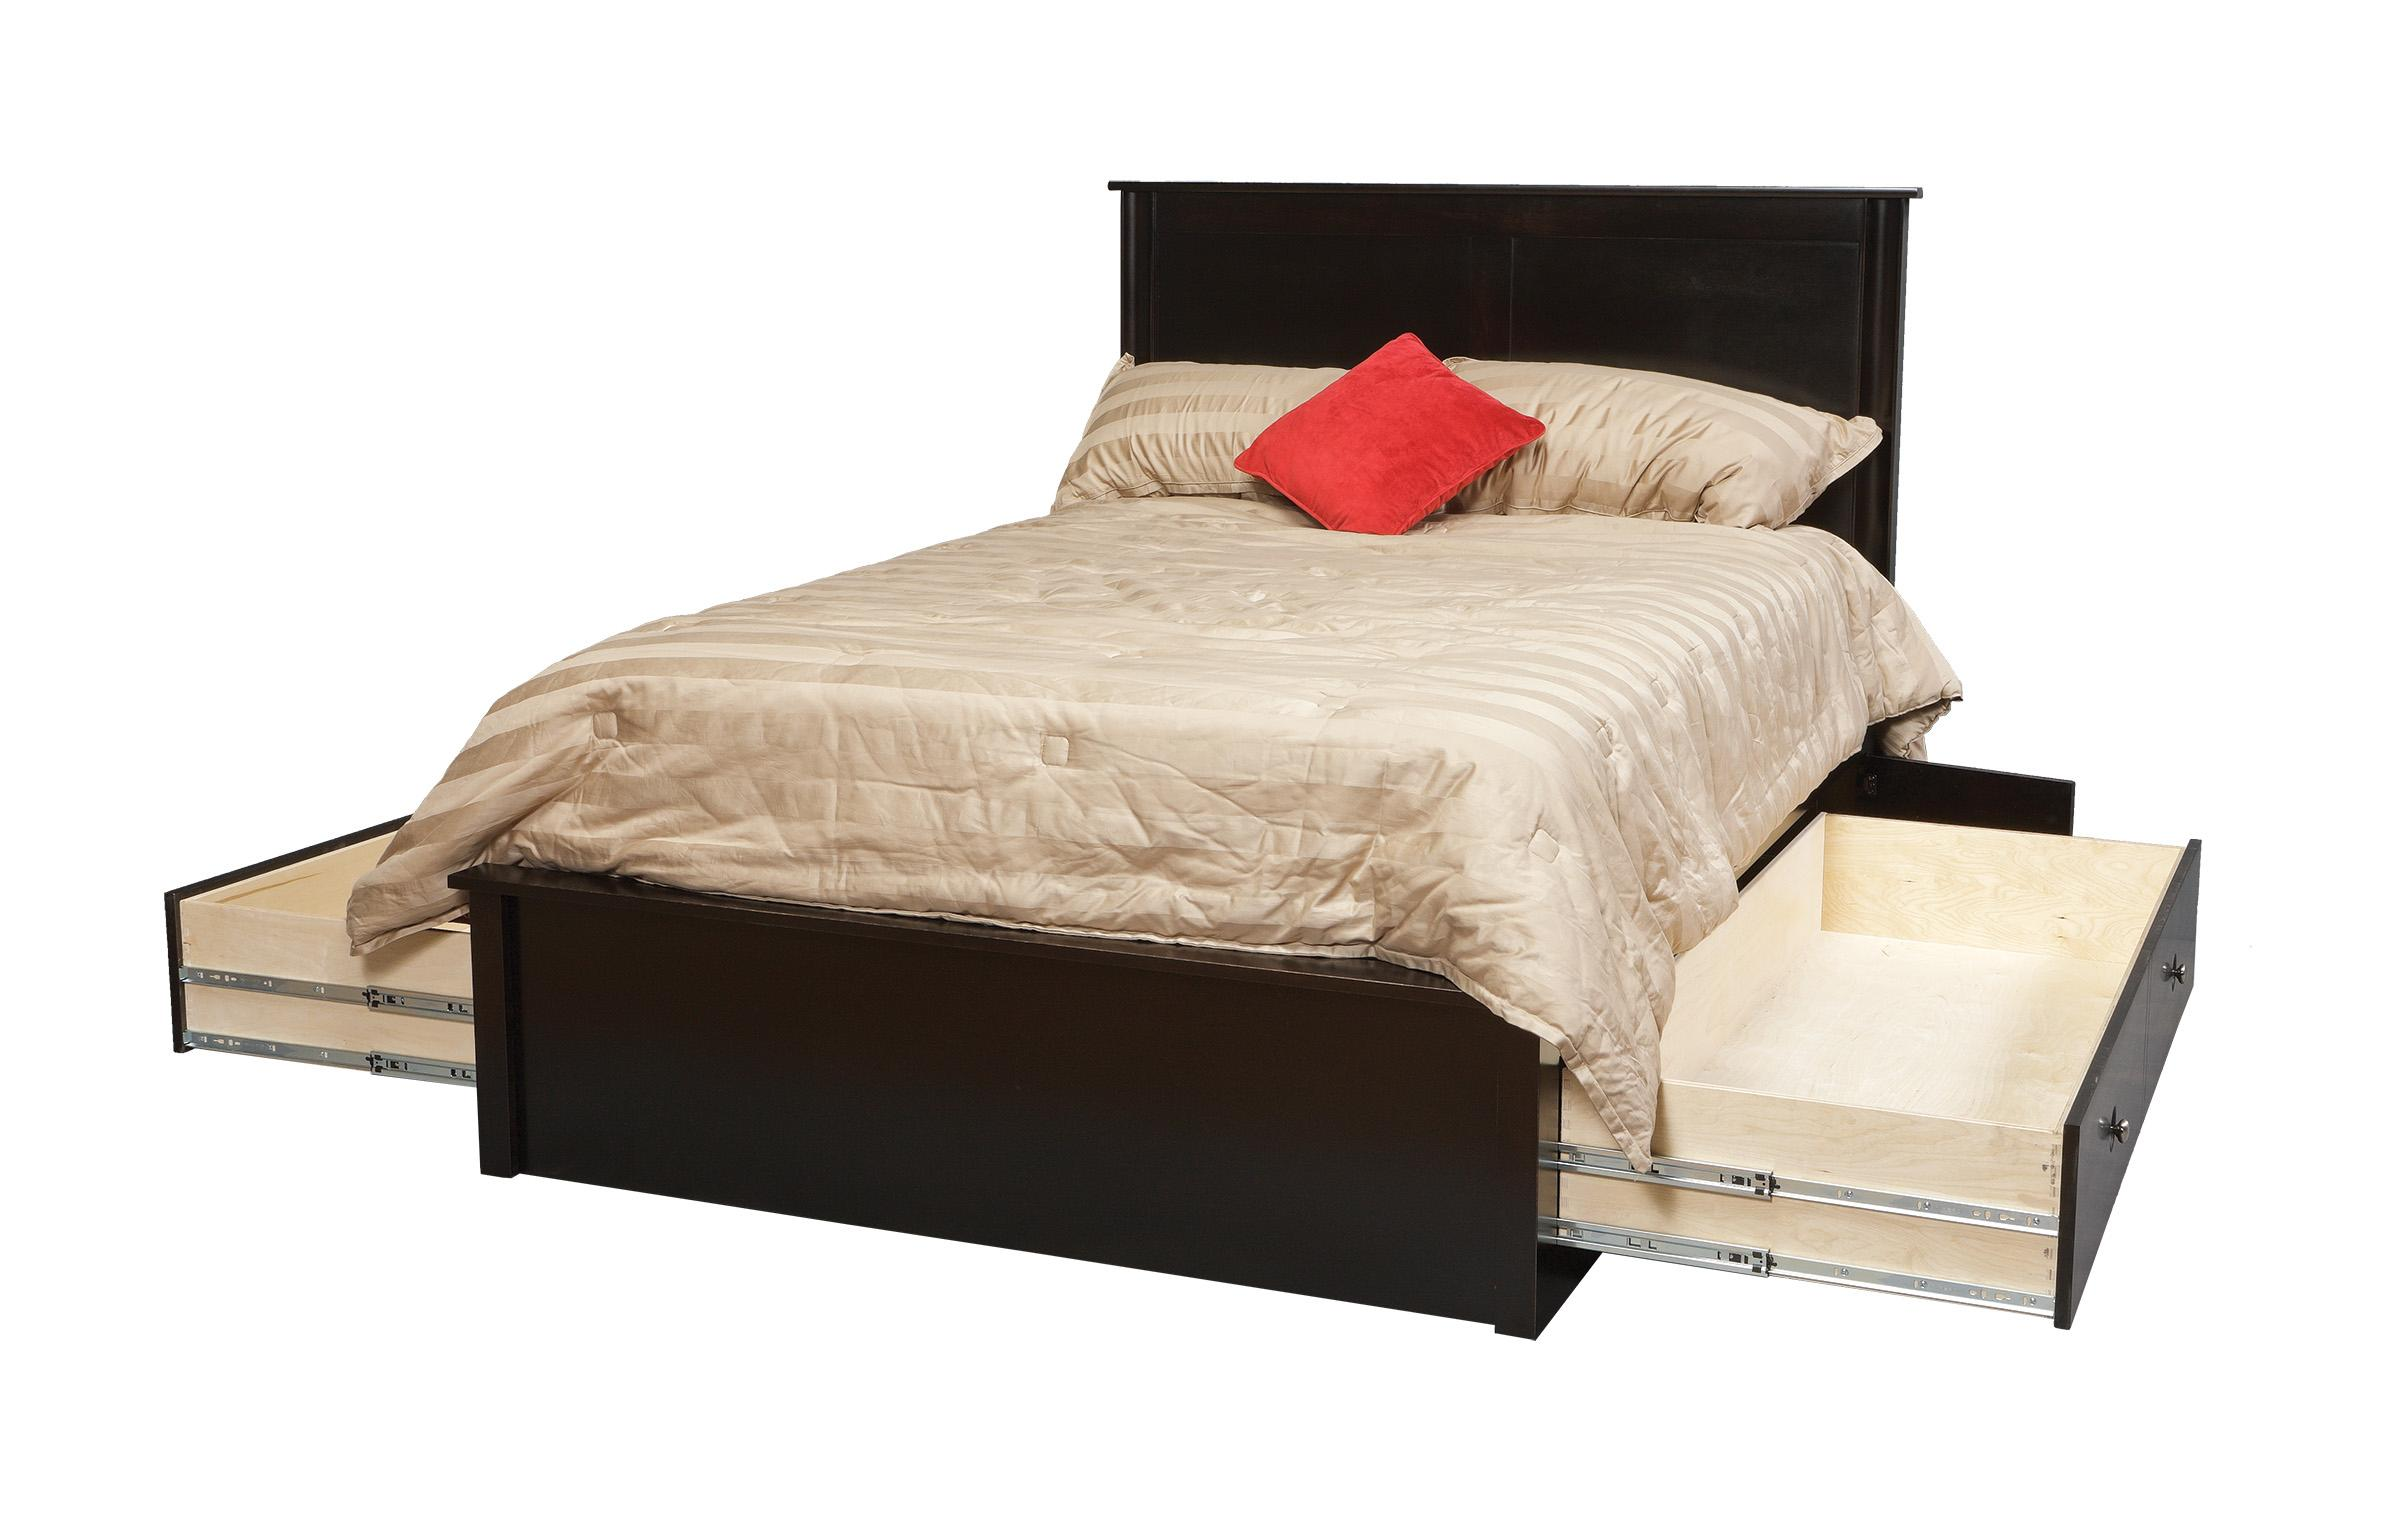 Cosmopolitan Cal King Pedestal Bed W/ Storage Drawers by Daniels Amish at Sprintz Furniture